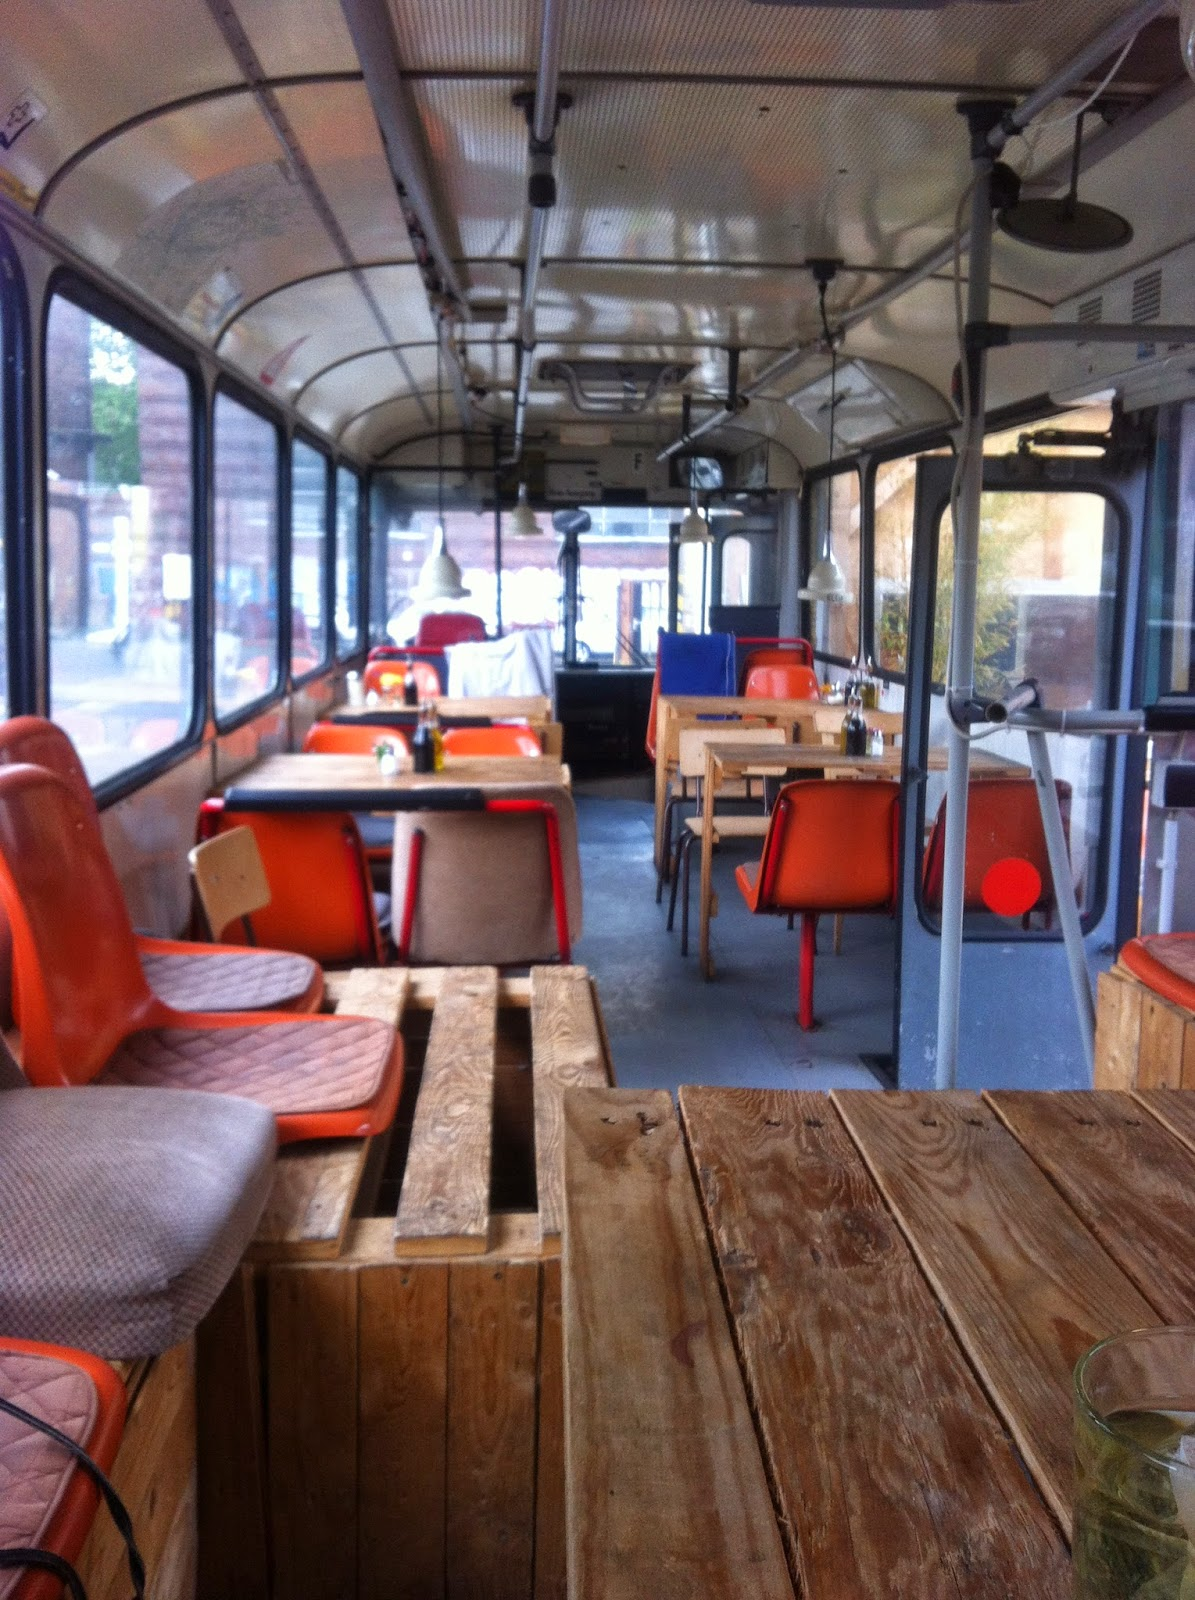 A restaurant inside a bus! Taking the food truck to the next level.